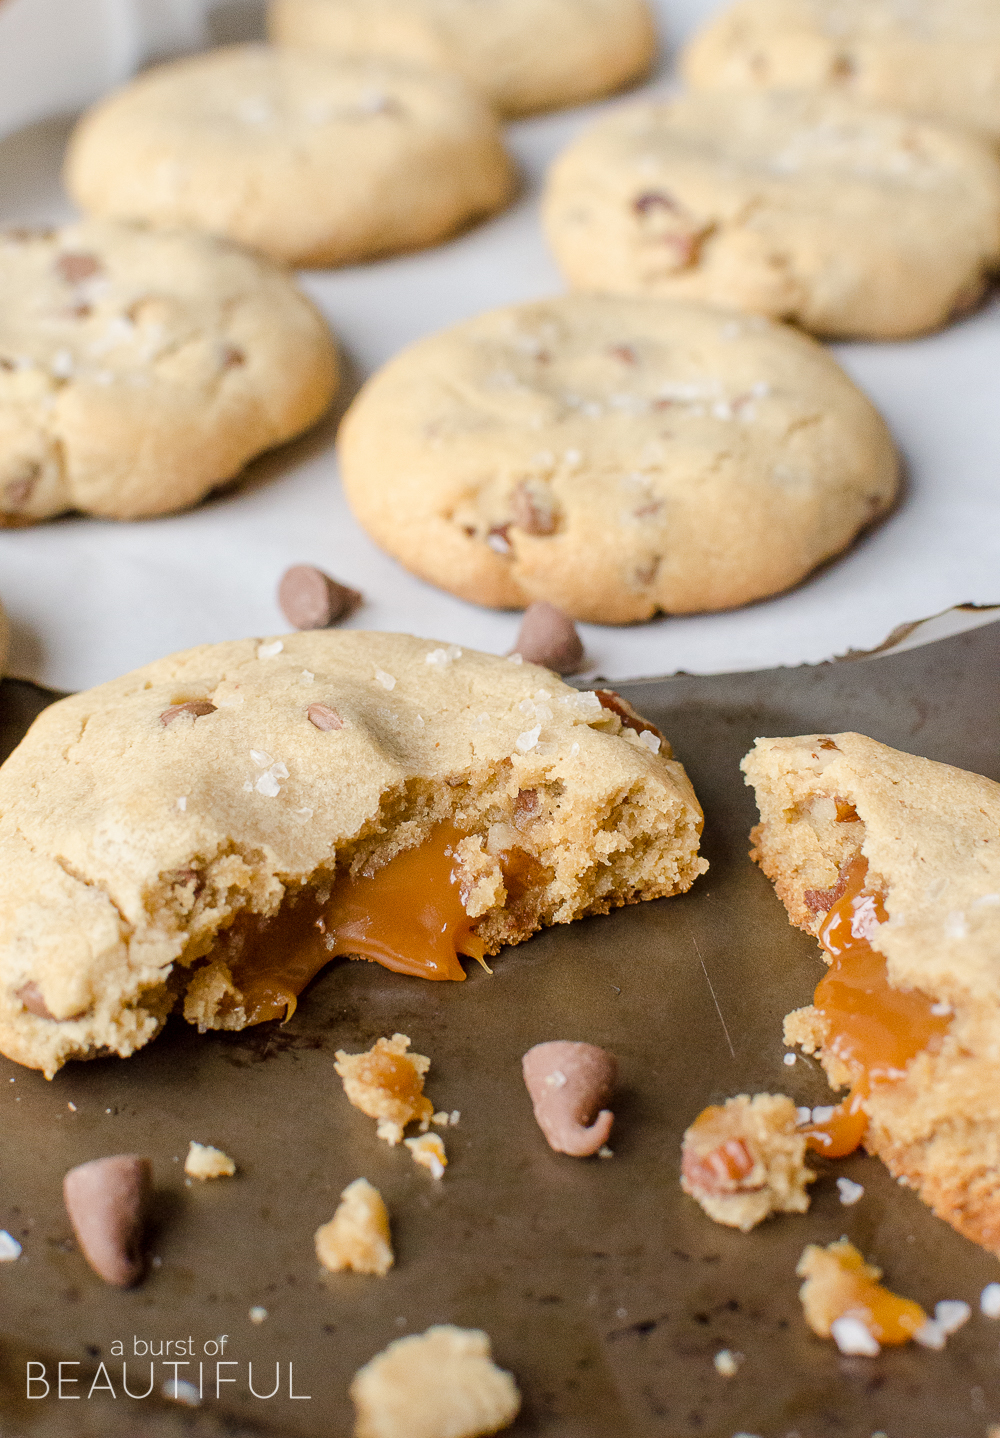 These caramel chocolate chip cookies are filled with a rich caramel center and melt-in-your-mouth chocolate chips.